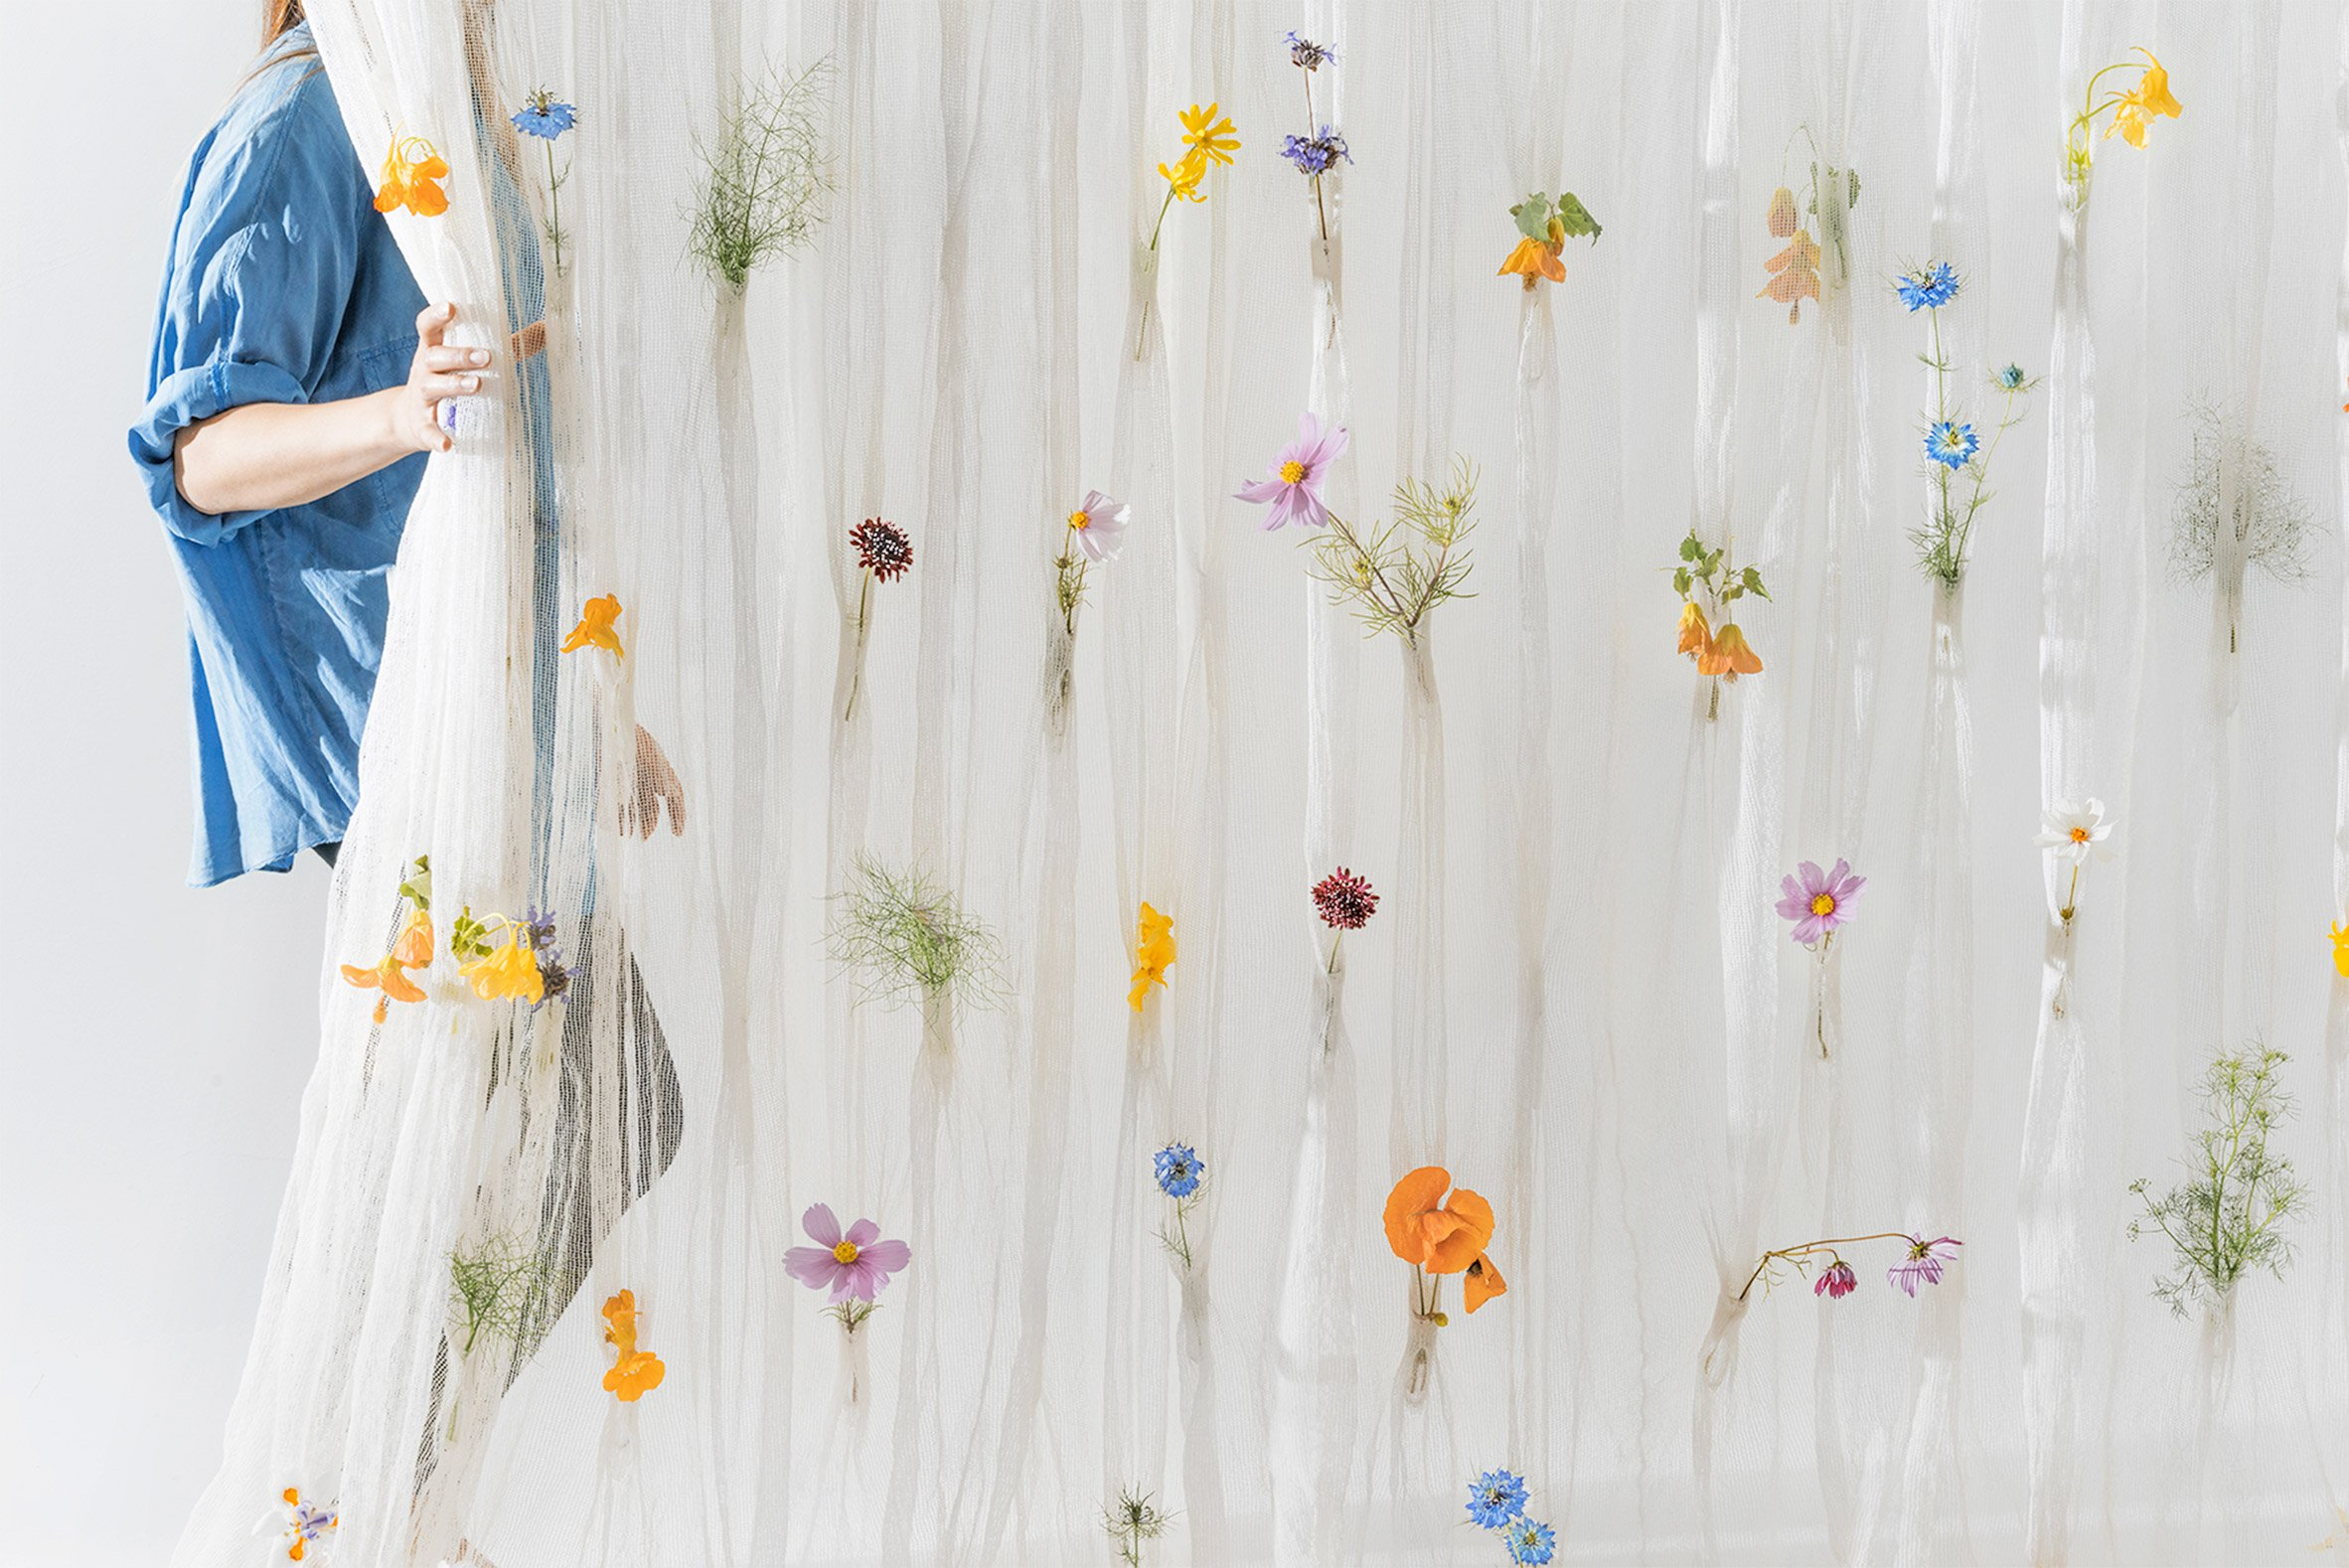 draped-flowers-curtain-ume-studio_dezeen_2364_col_5